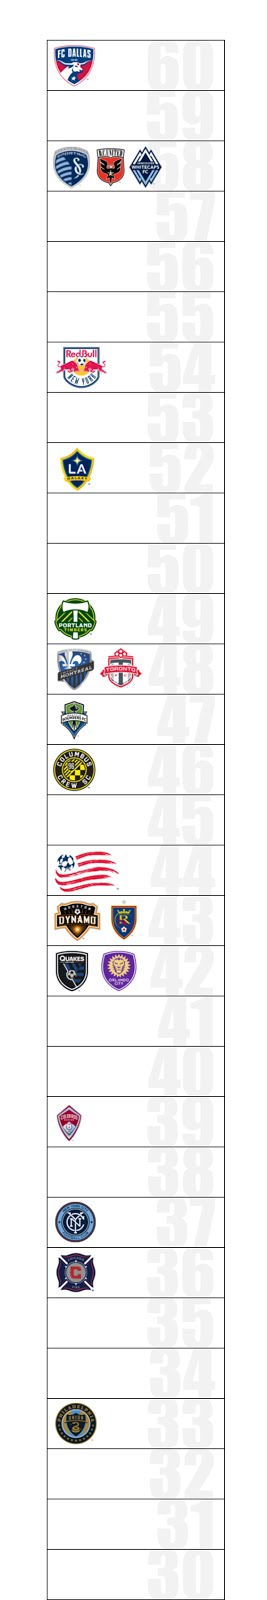 MLS Projected Pts